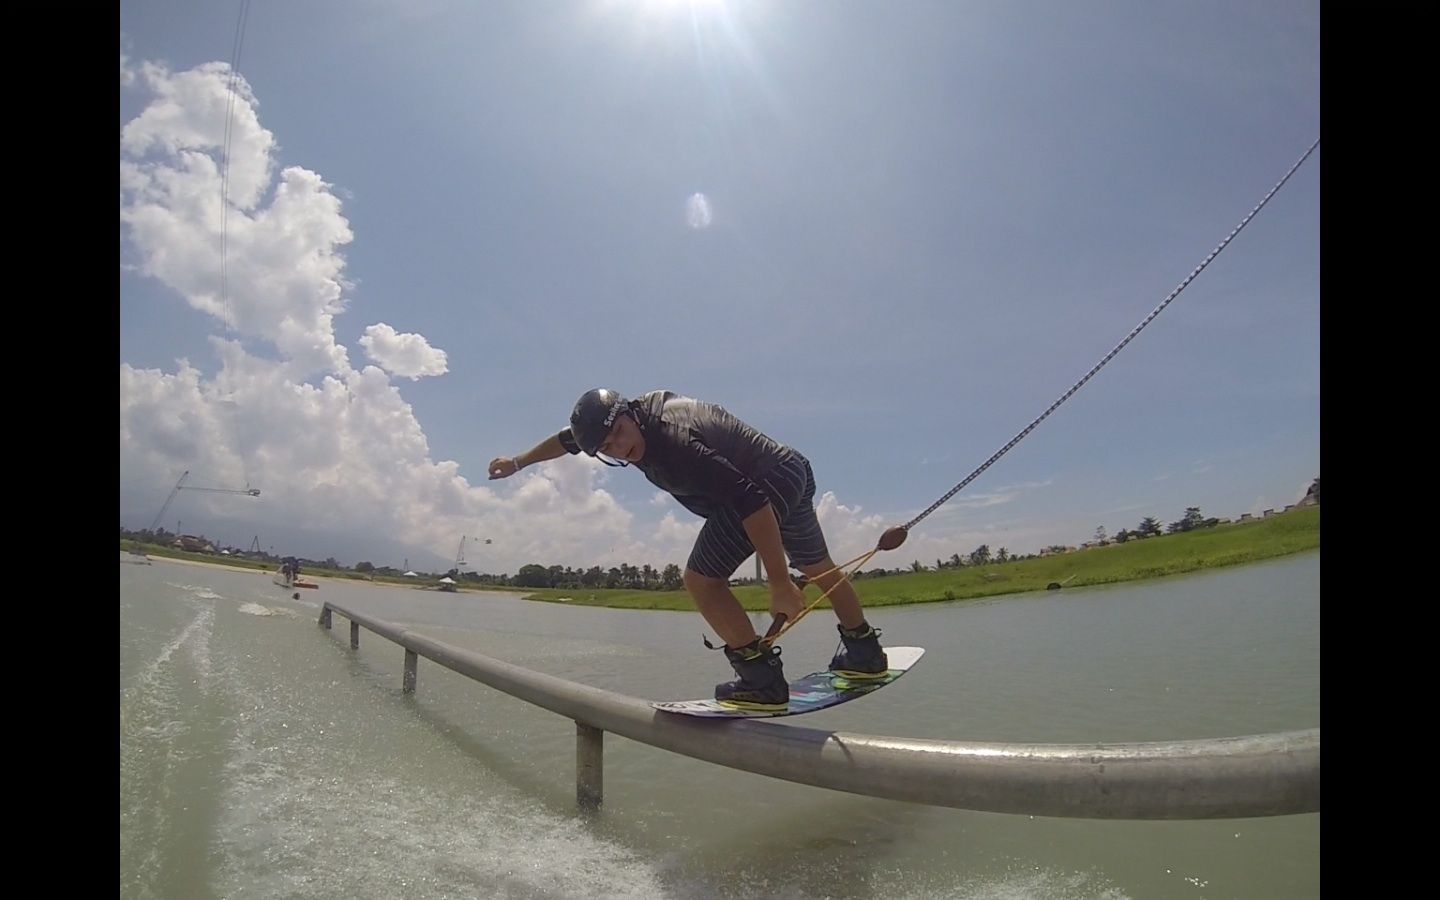 Wakeboarding. Metal pipe wakeboard hit by James Windsor at Camsur Watersports Complex, Philippines